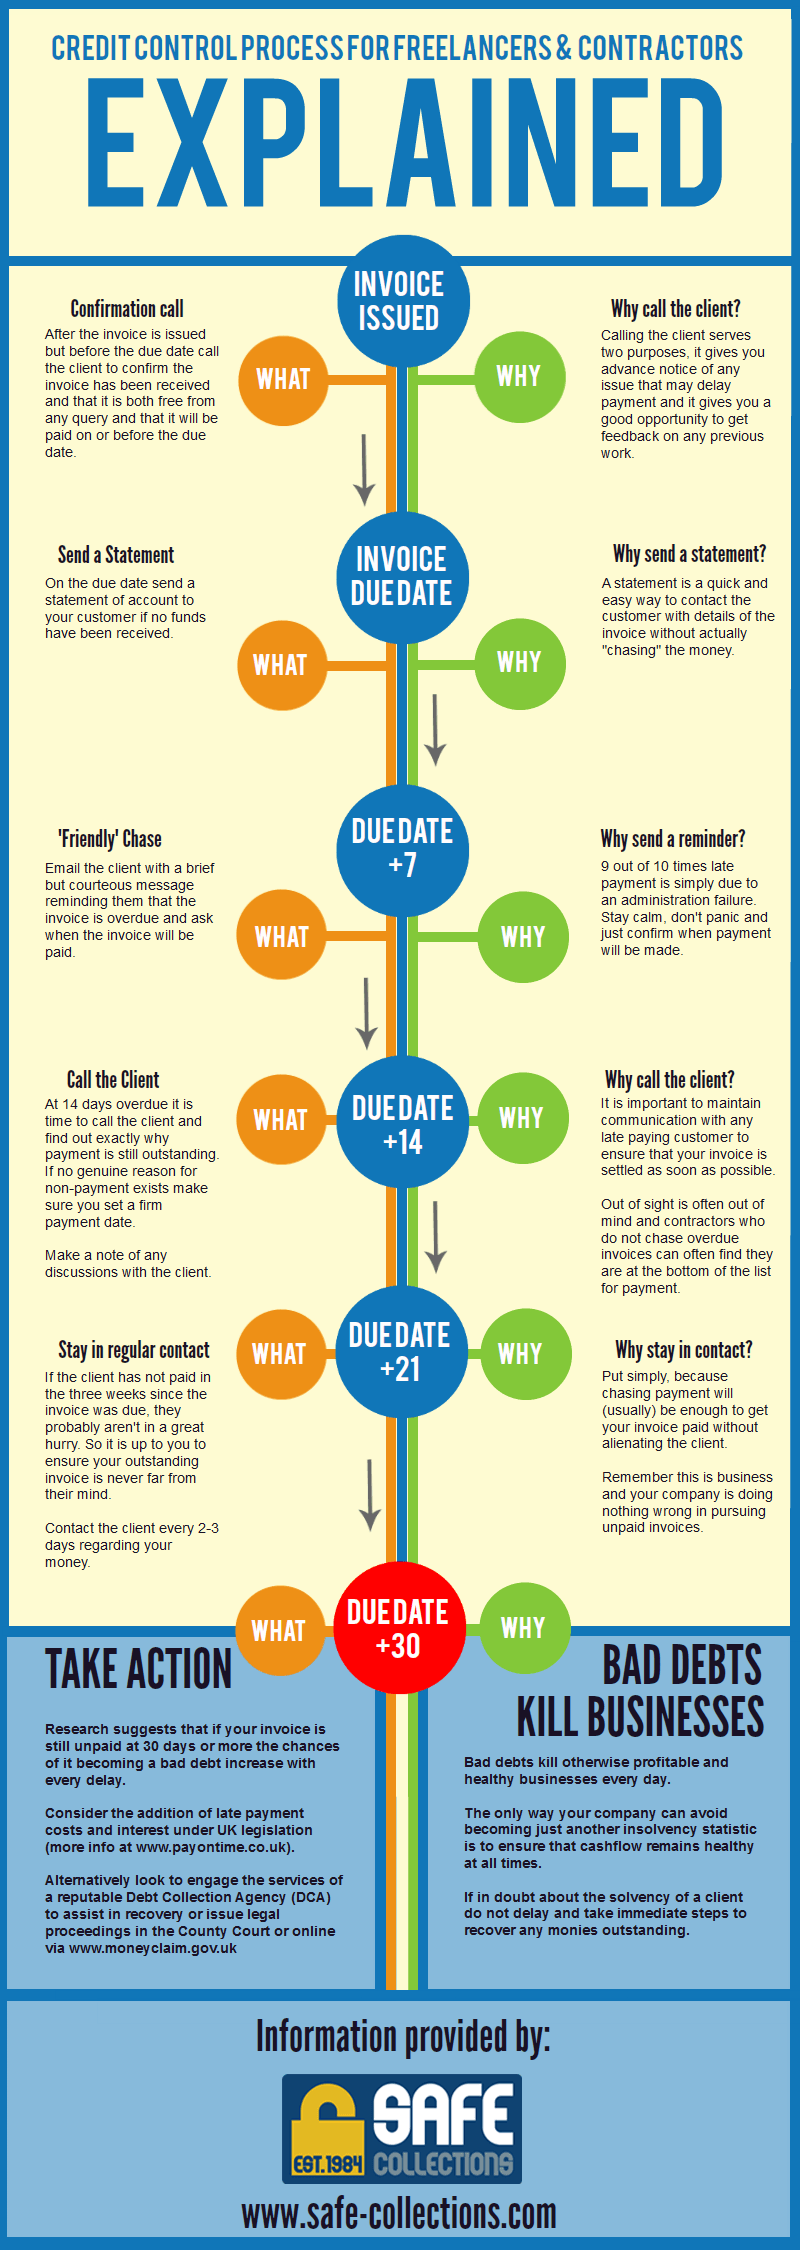 Credit Control infographic